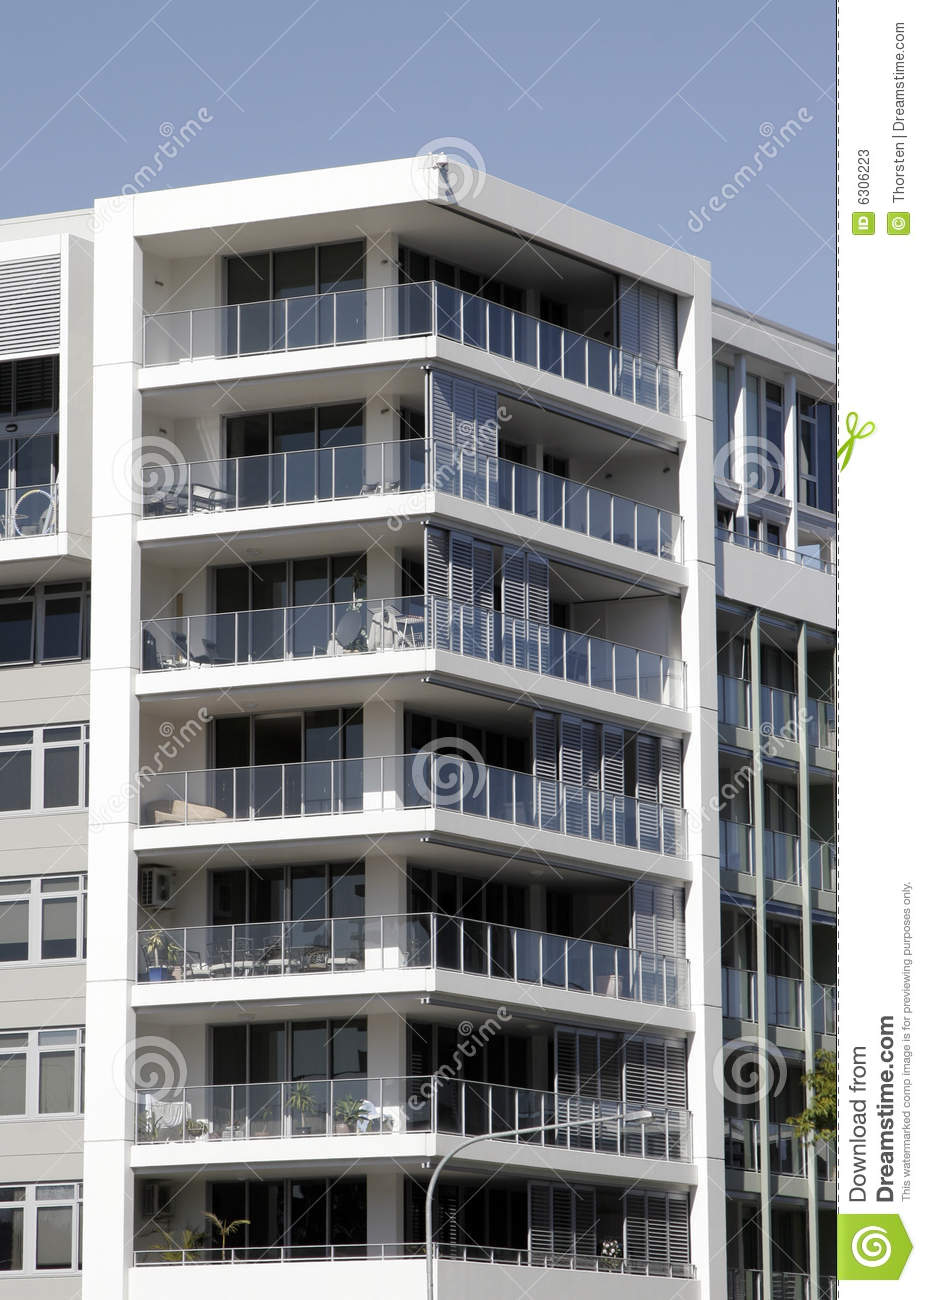 Construction sydney de l 39 australie d 39 appartement photos stock image - Appartement australie ...